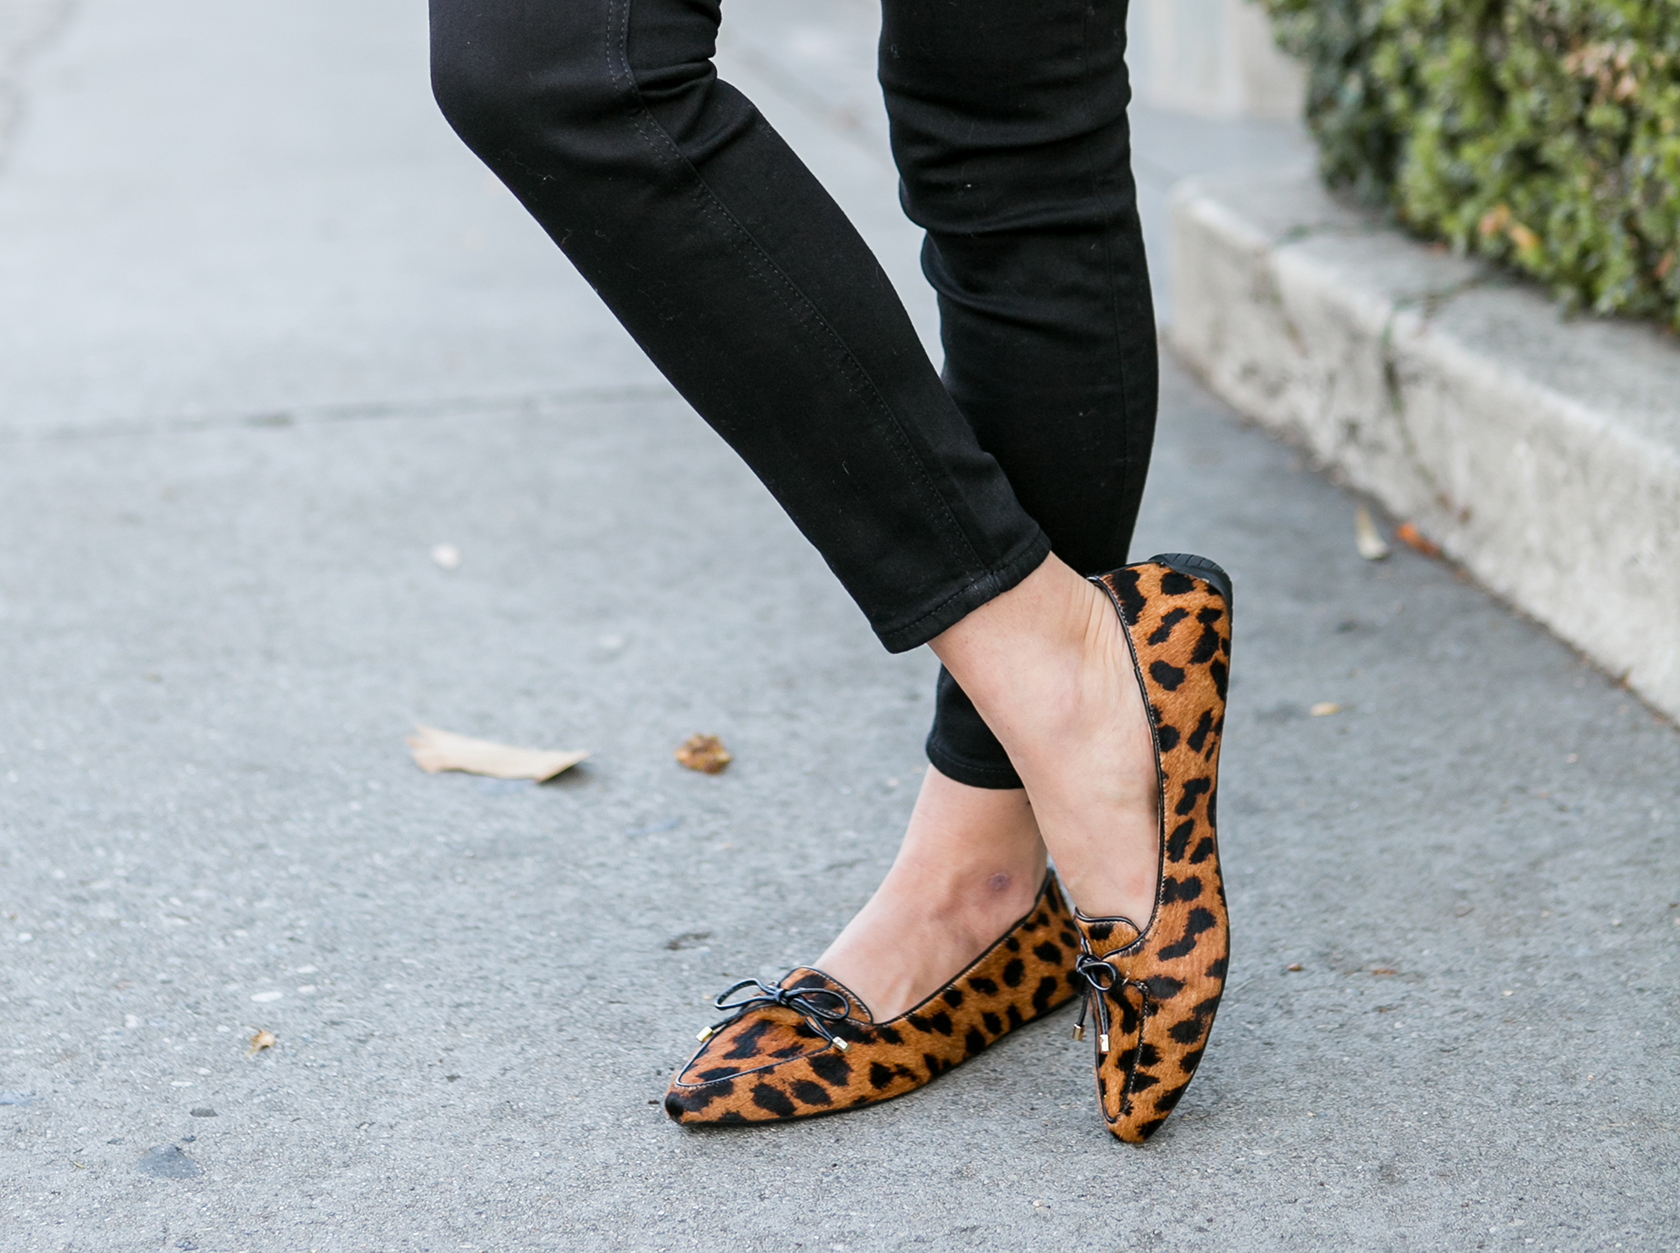 Sydne-Style-wears-Talbots-leopard-flats-for-fall.jpg